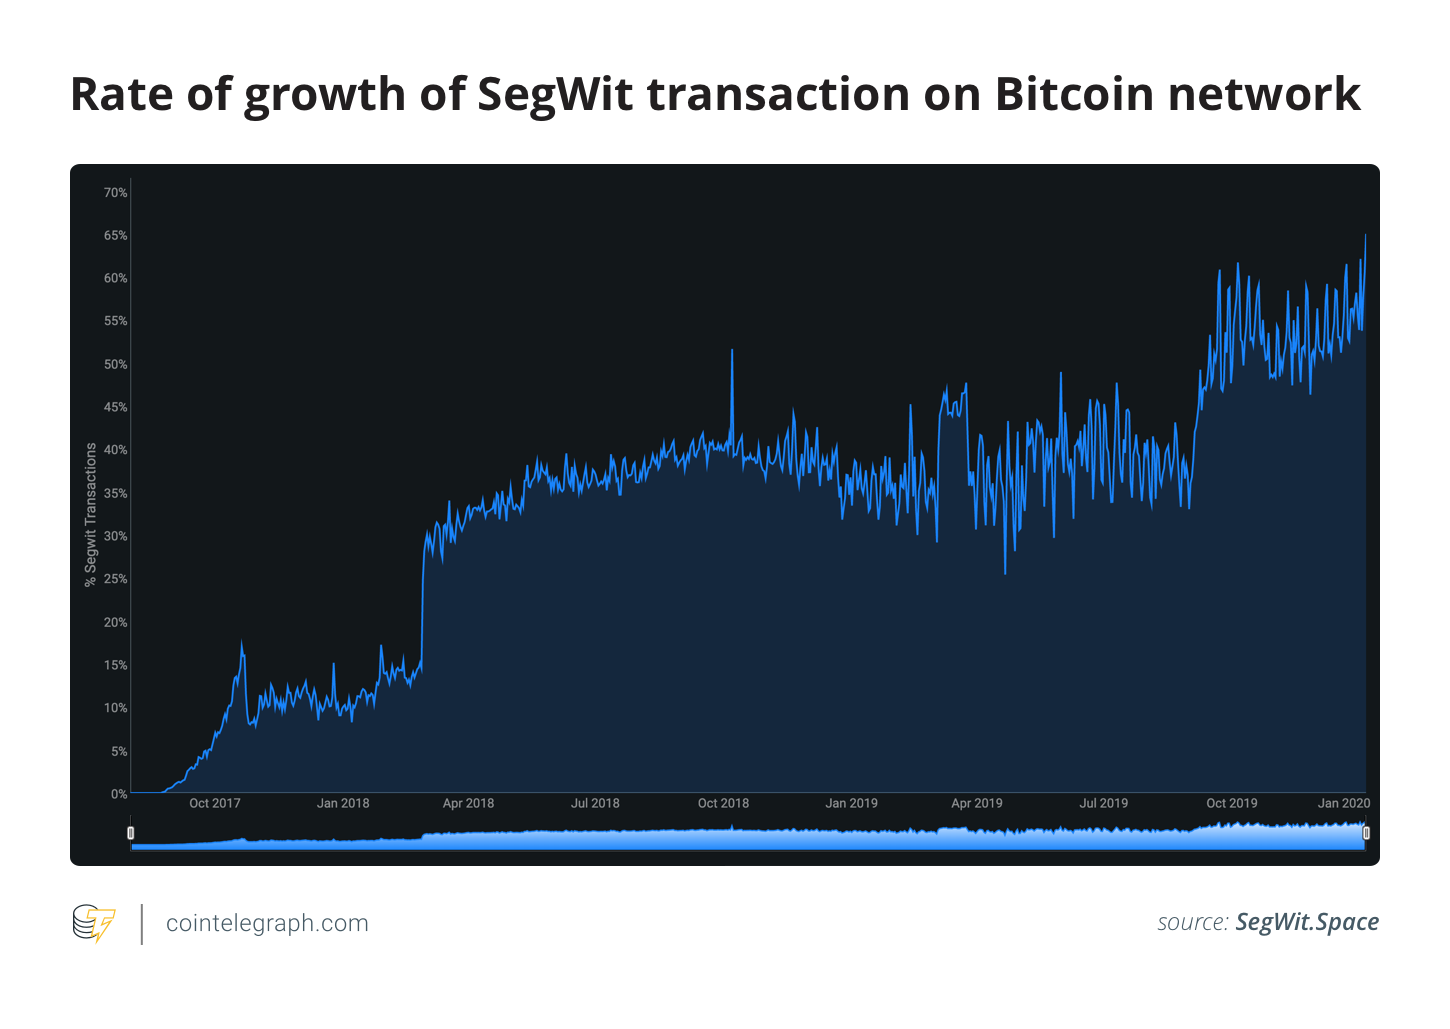 Bitcoin network SegWit transaction growth